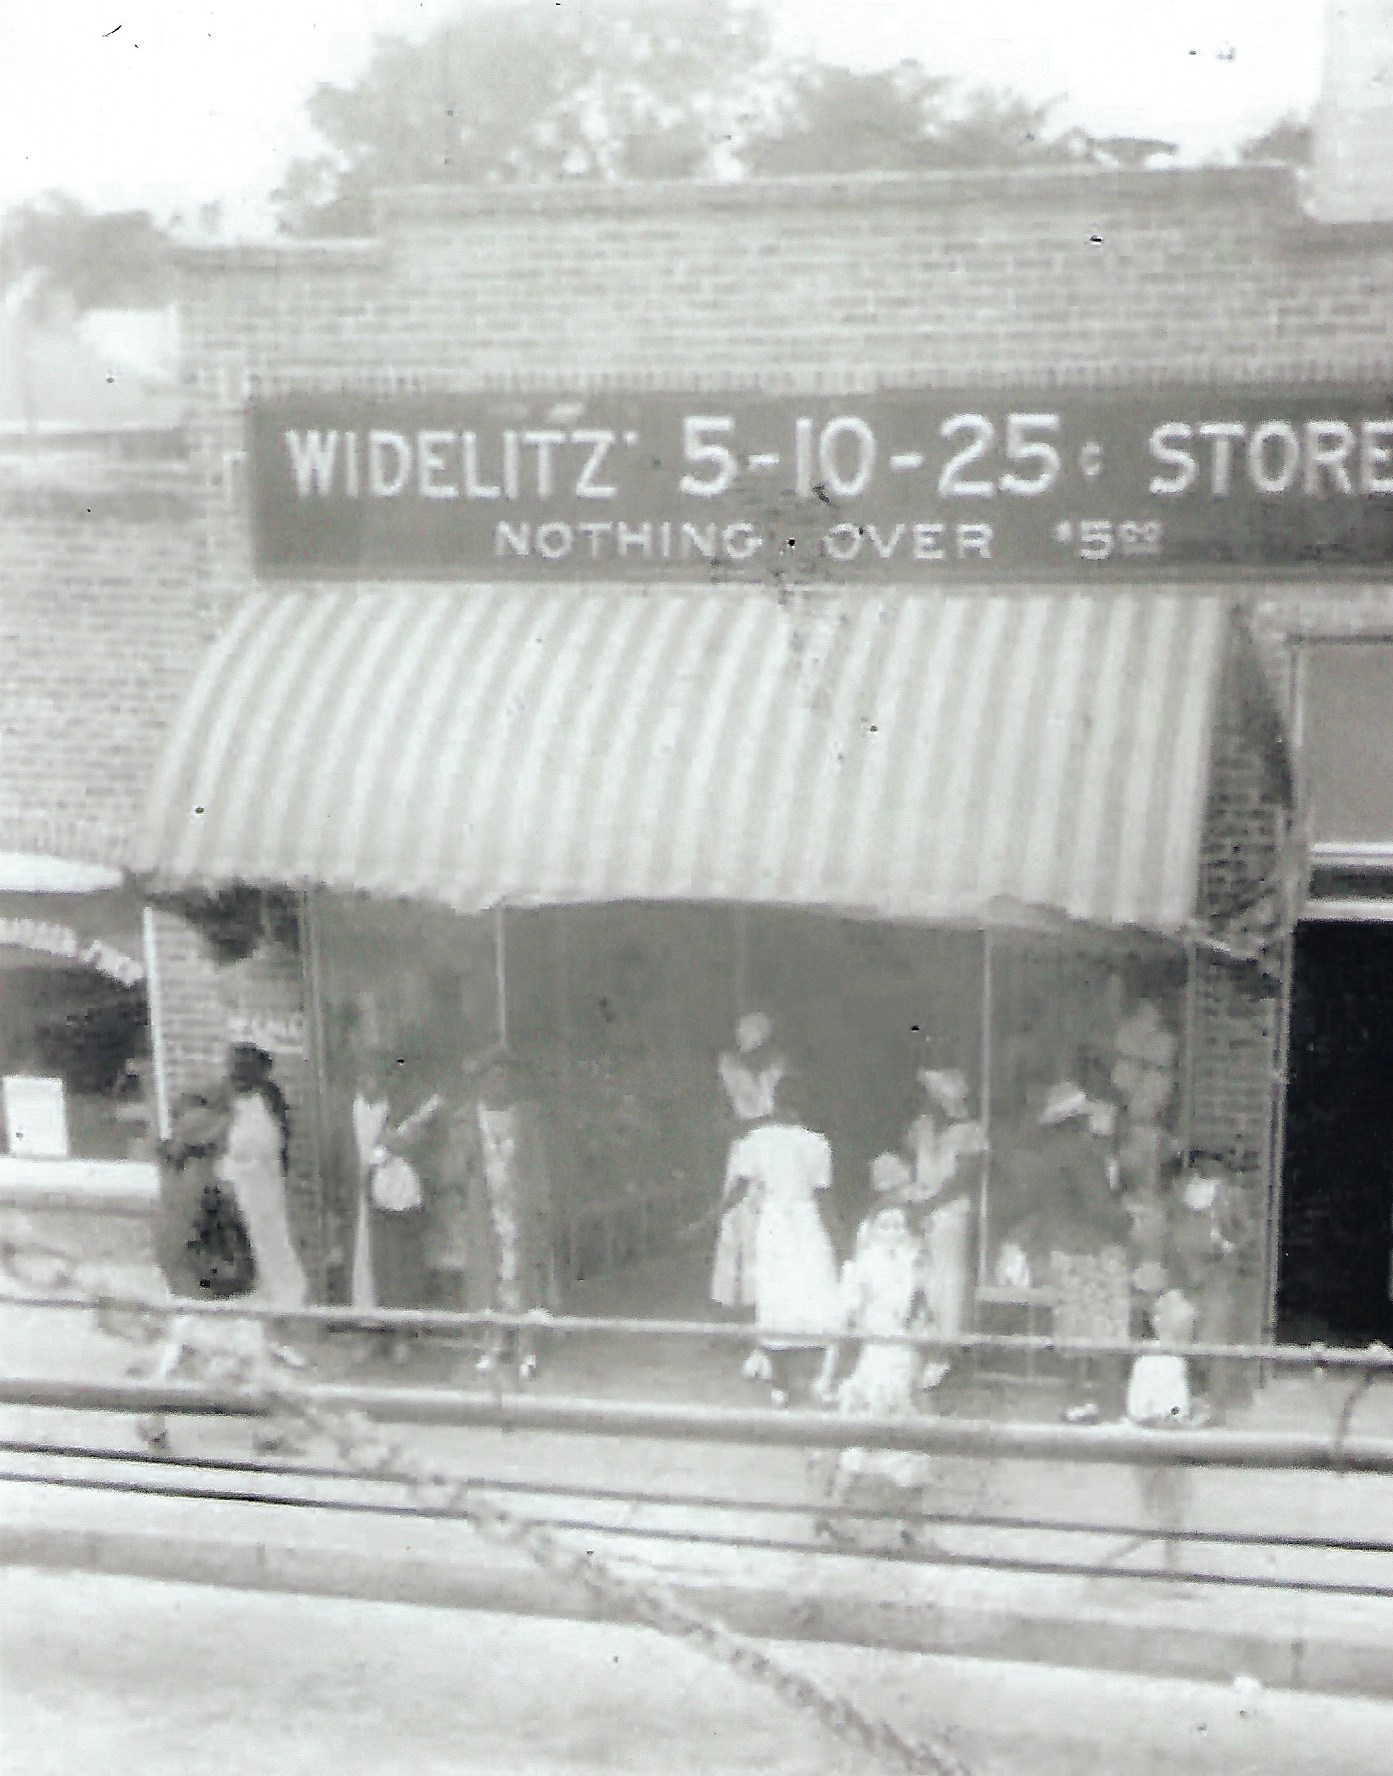 St_George_Widelitz_Department_Store_2